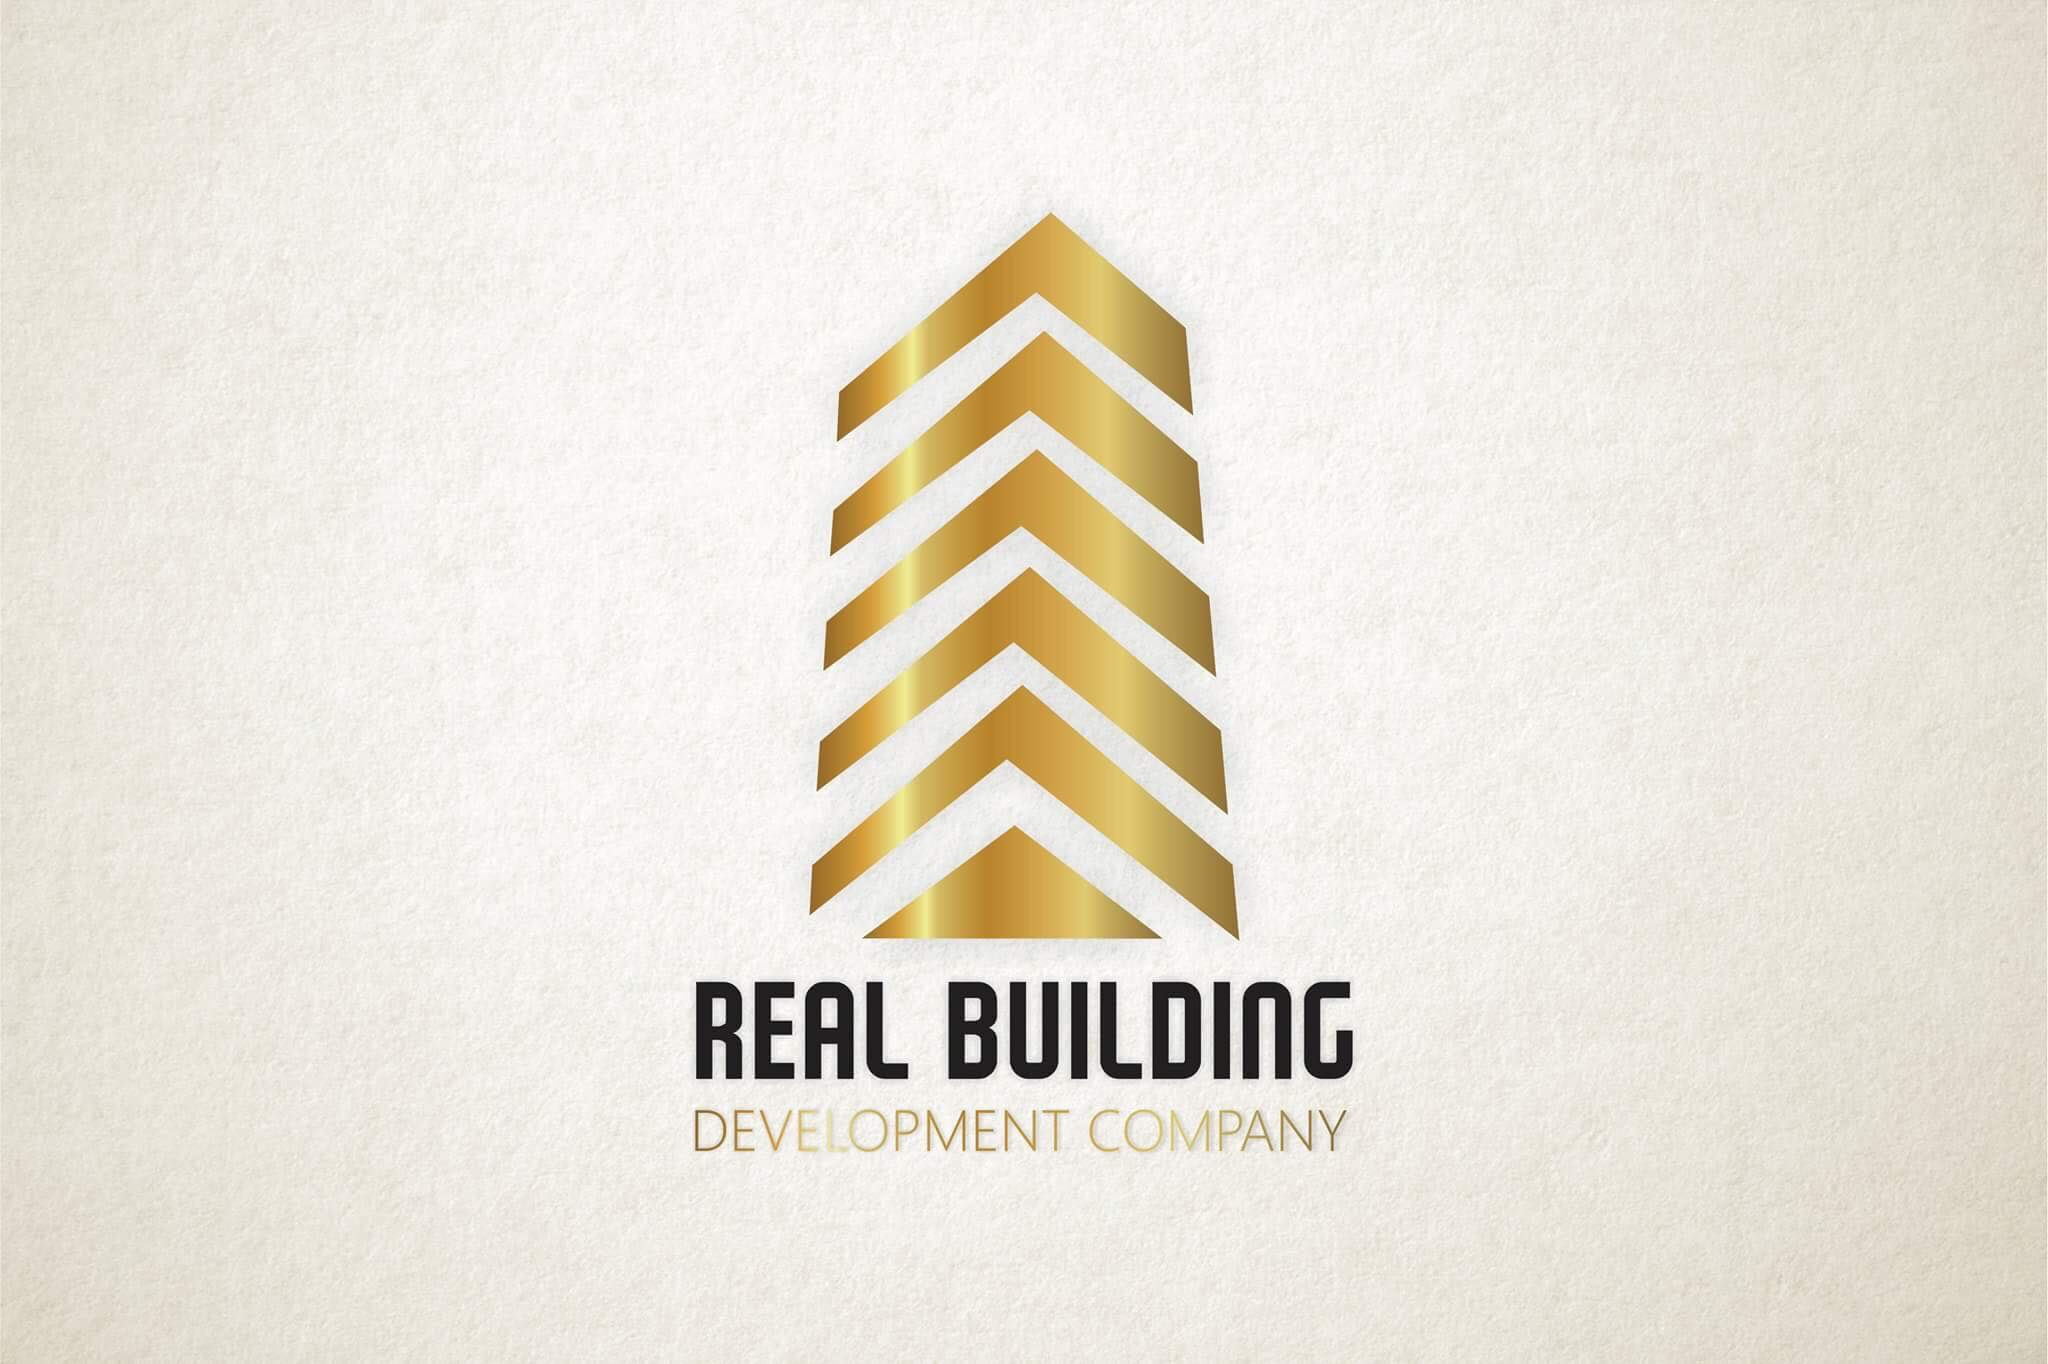 Real Building